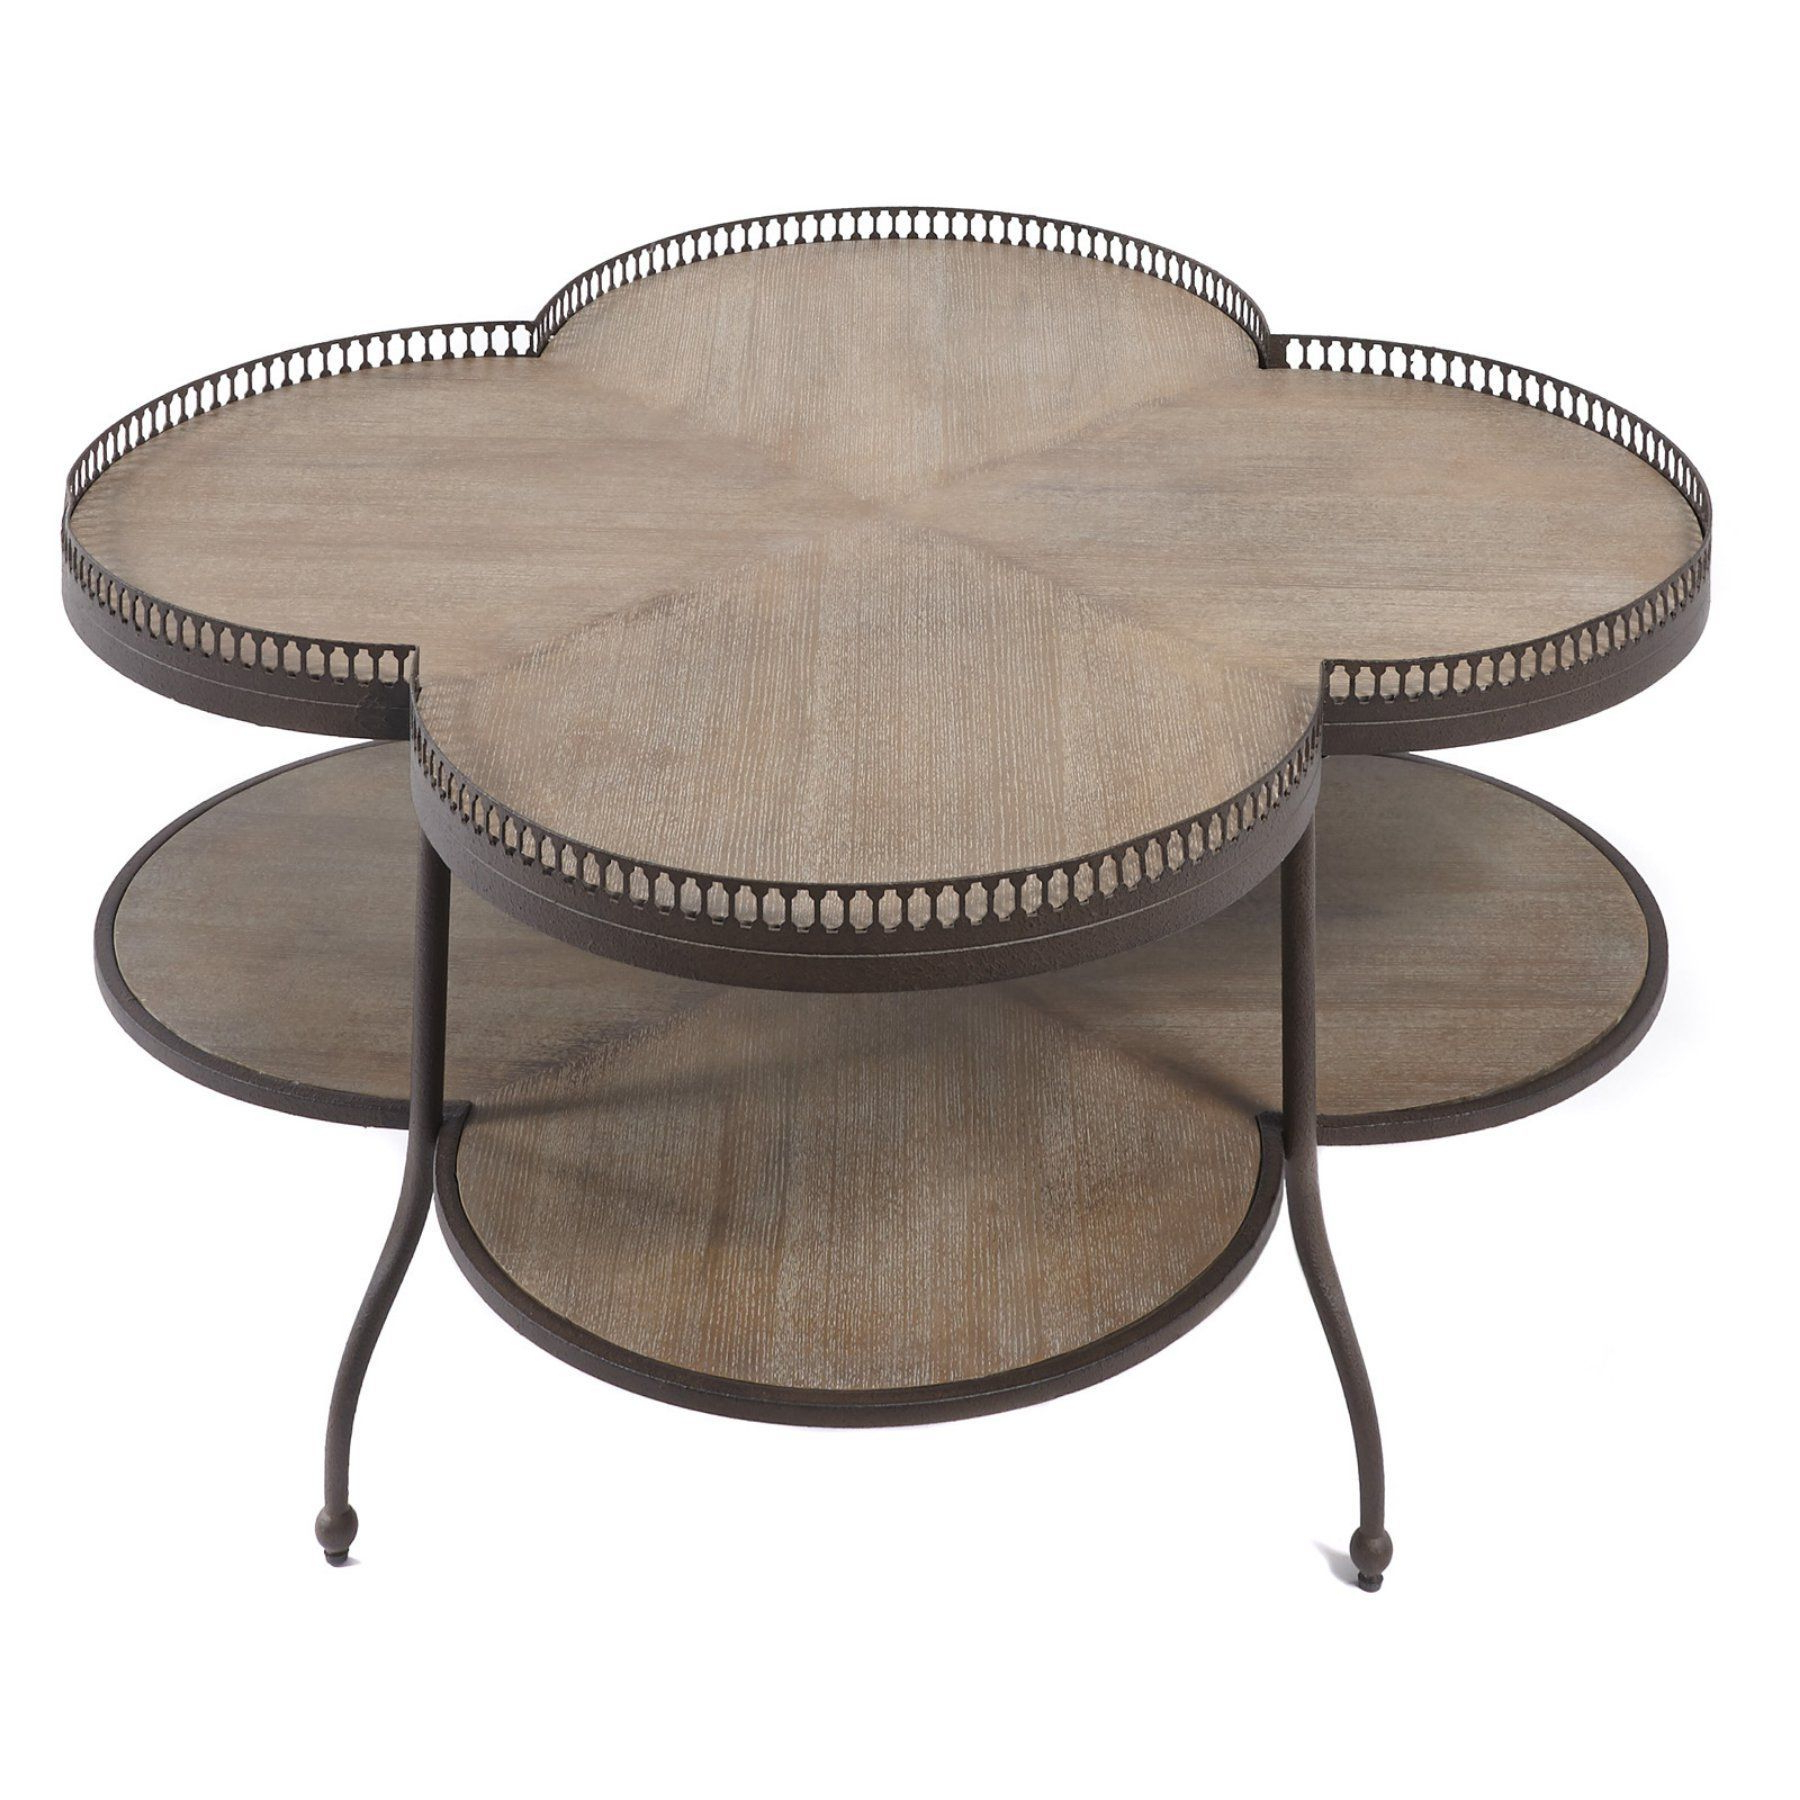 Progressive Furniture Clementine Scalloped Coffee Table – A186 39 For Preferred Cuff Hammered Gold Coffee Tables (View 10 of 20)